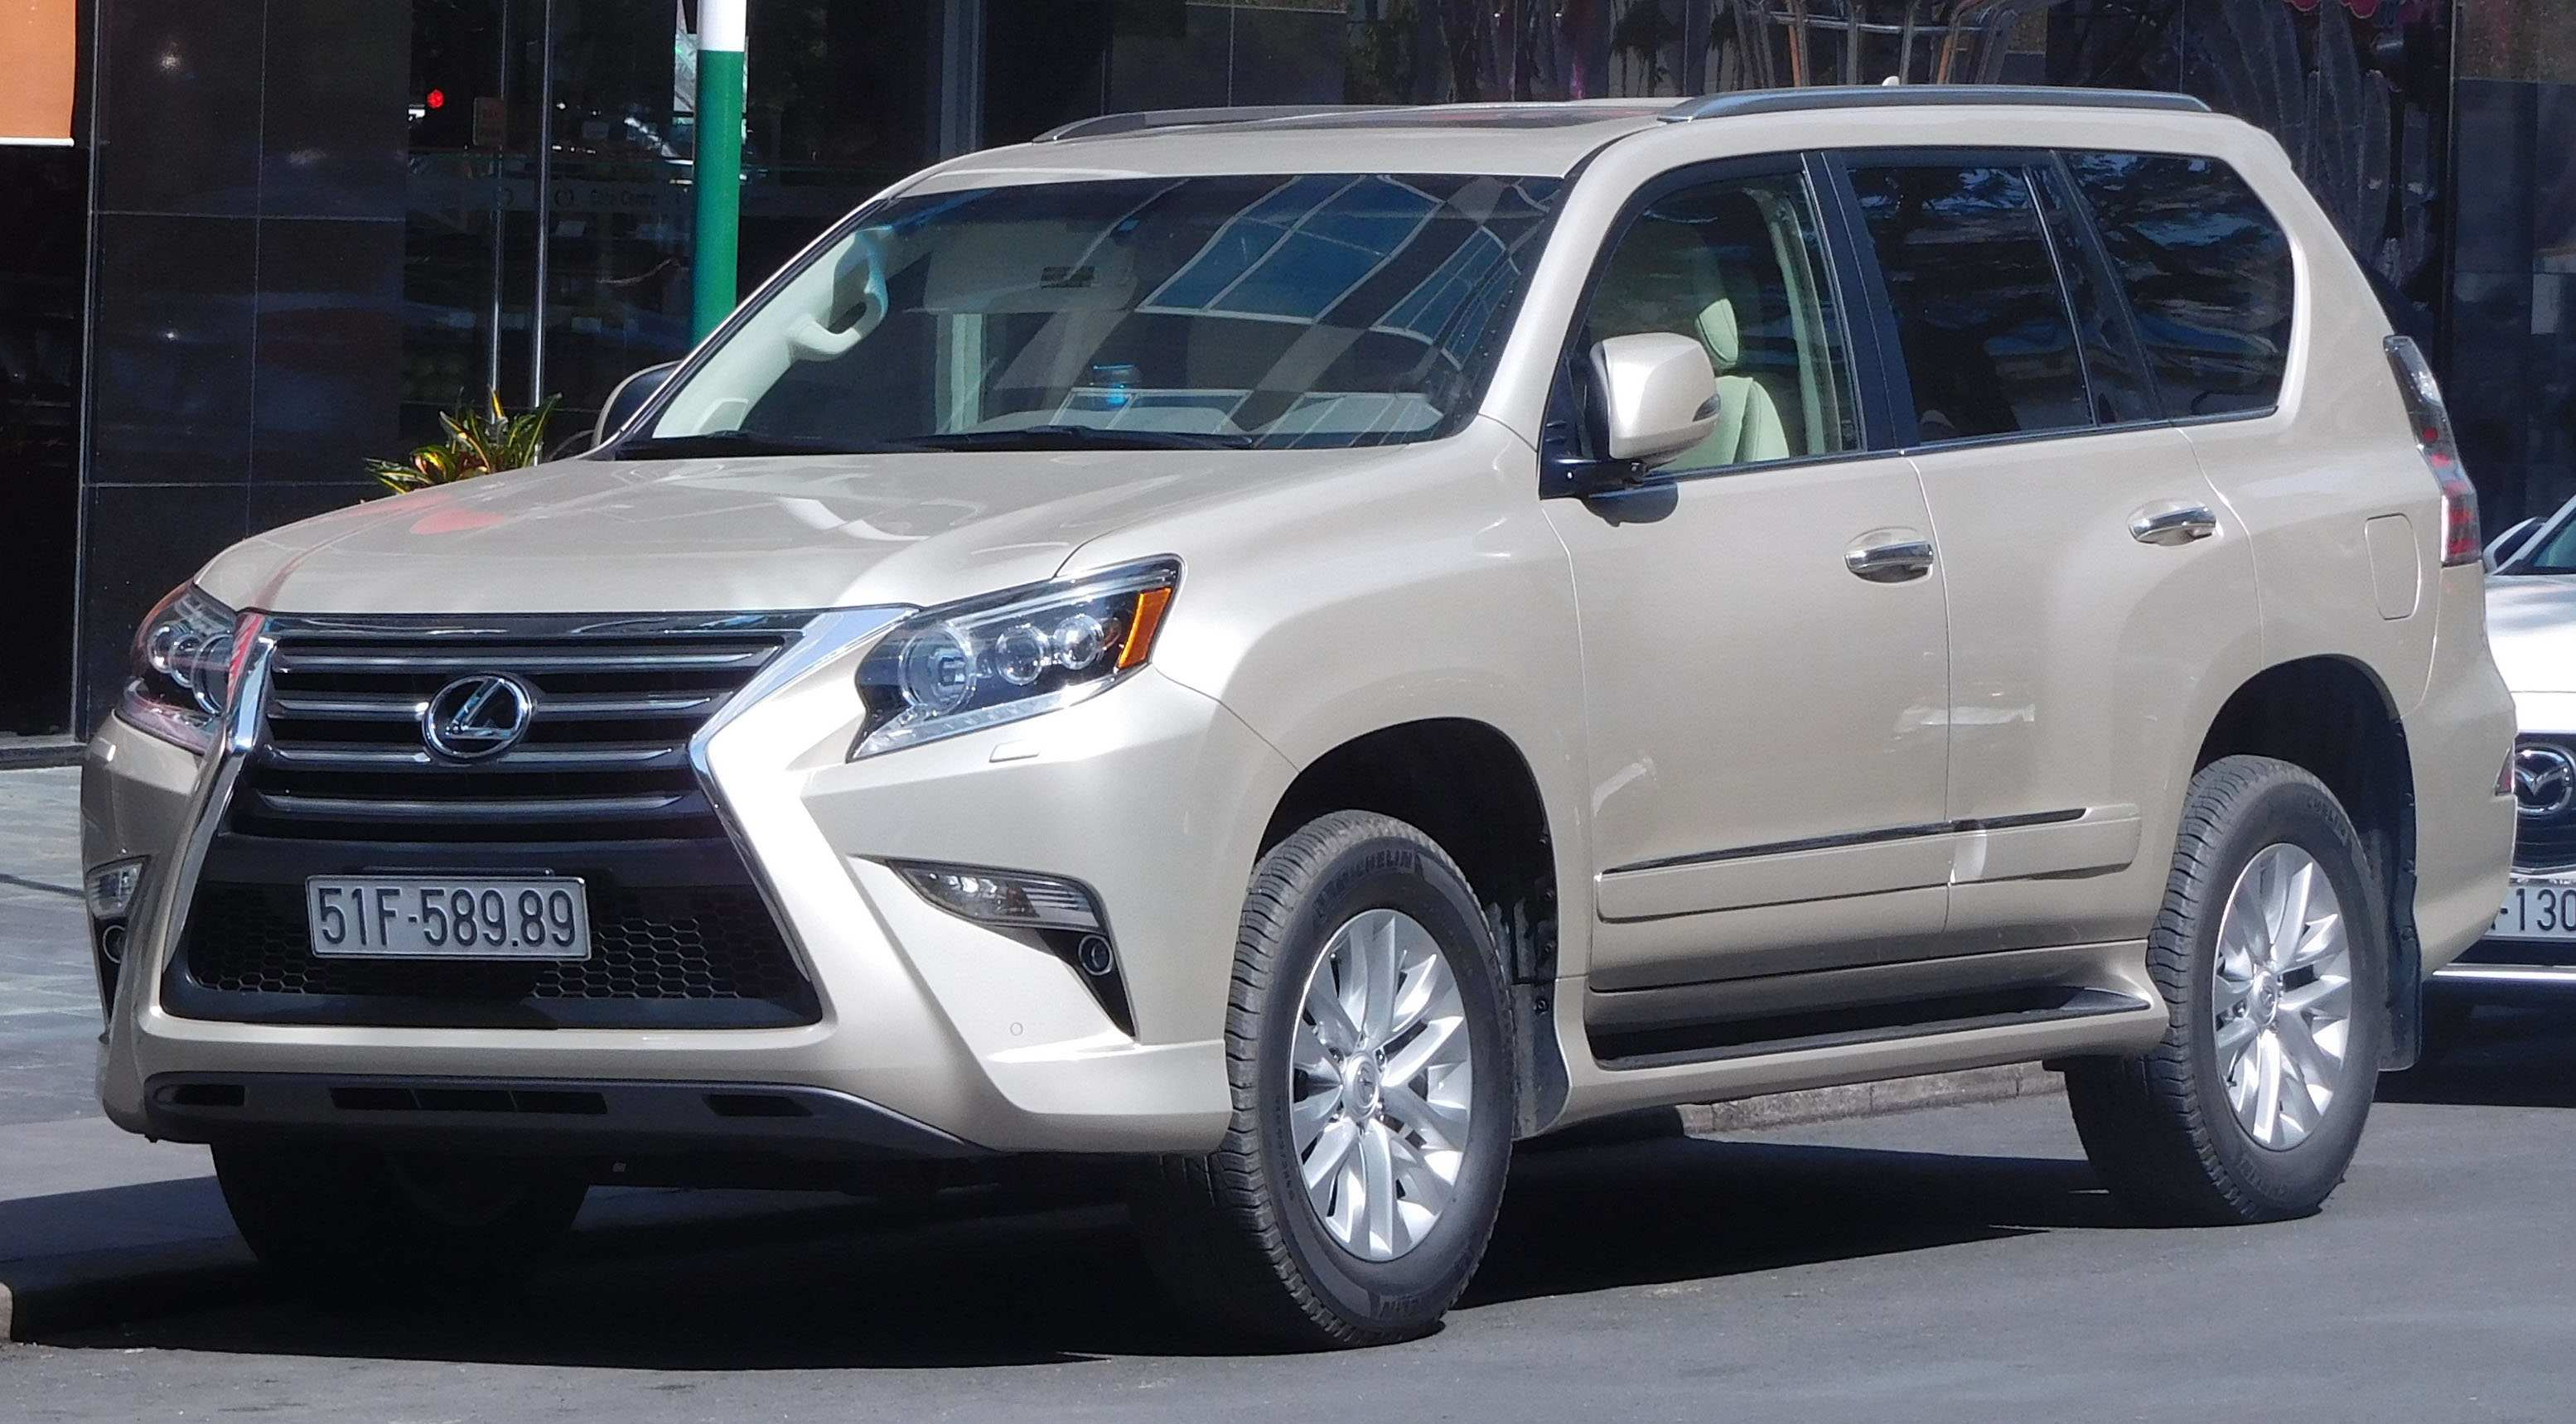 35 New Lexus Gx 460 Pictures Review with Lexus Gx 460 Pictures